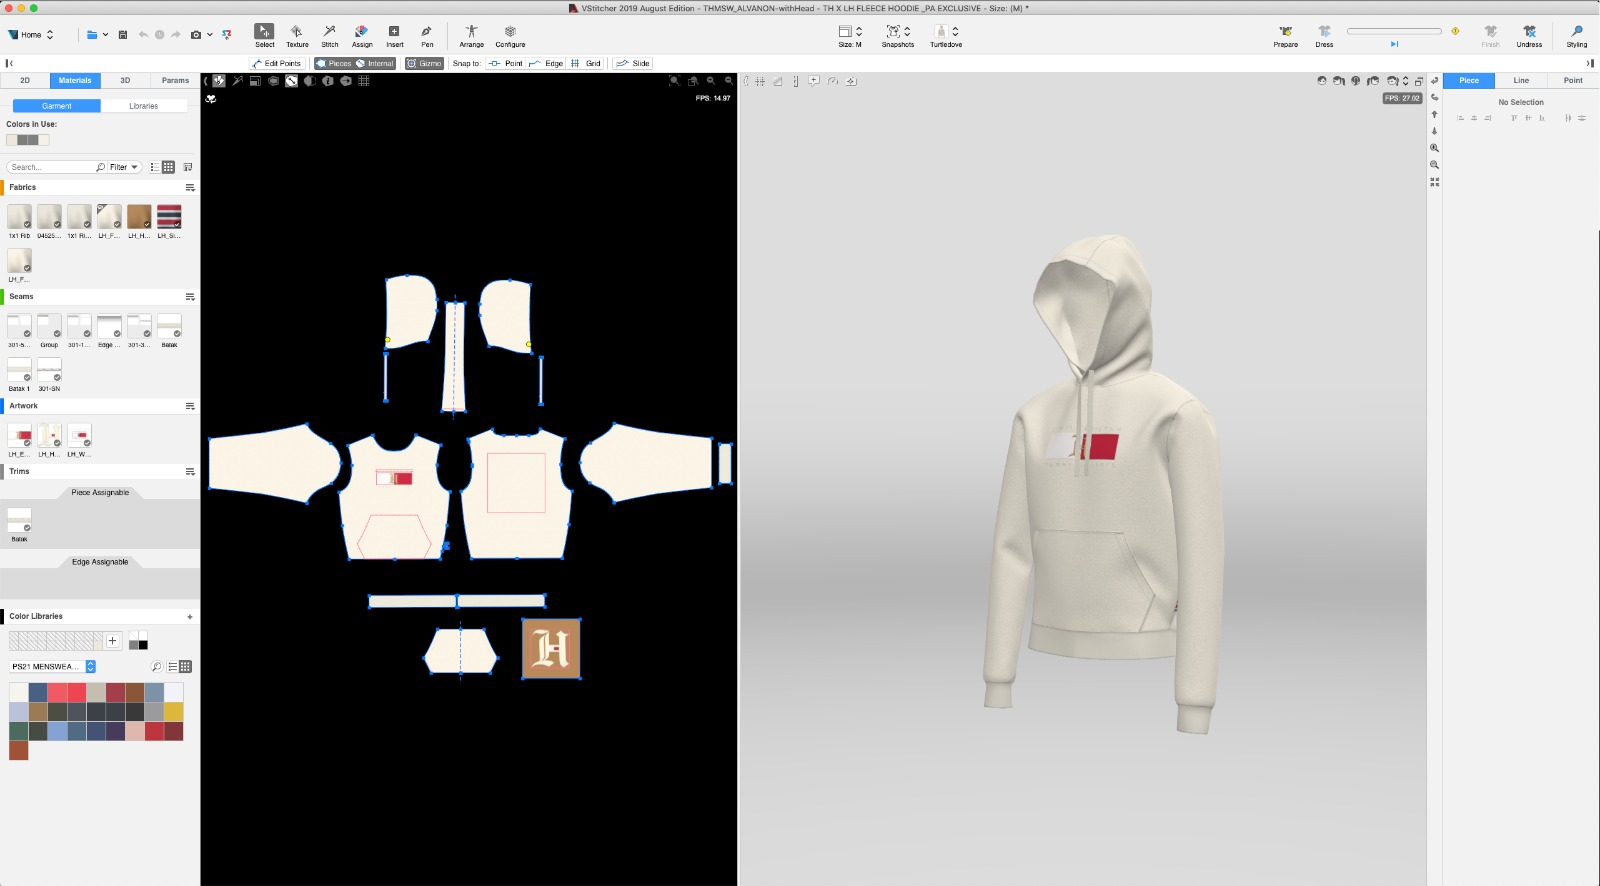 Tommy Hilfiger Commits To 3D Design to Realize Ambitious Digitalization Journey